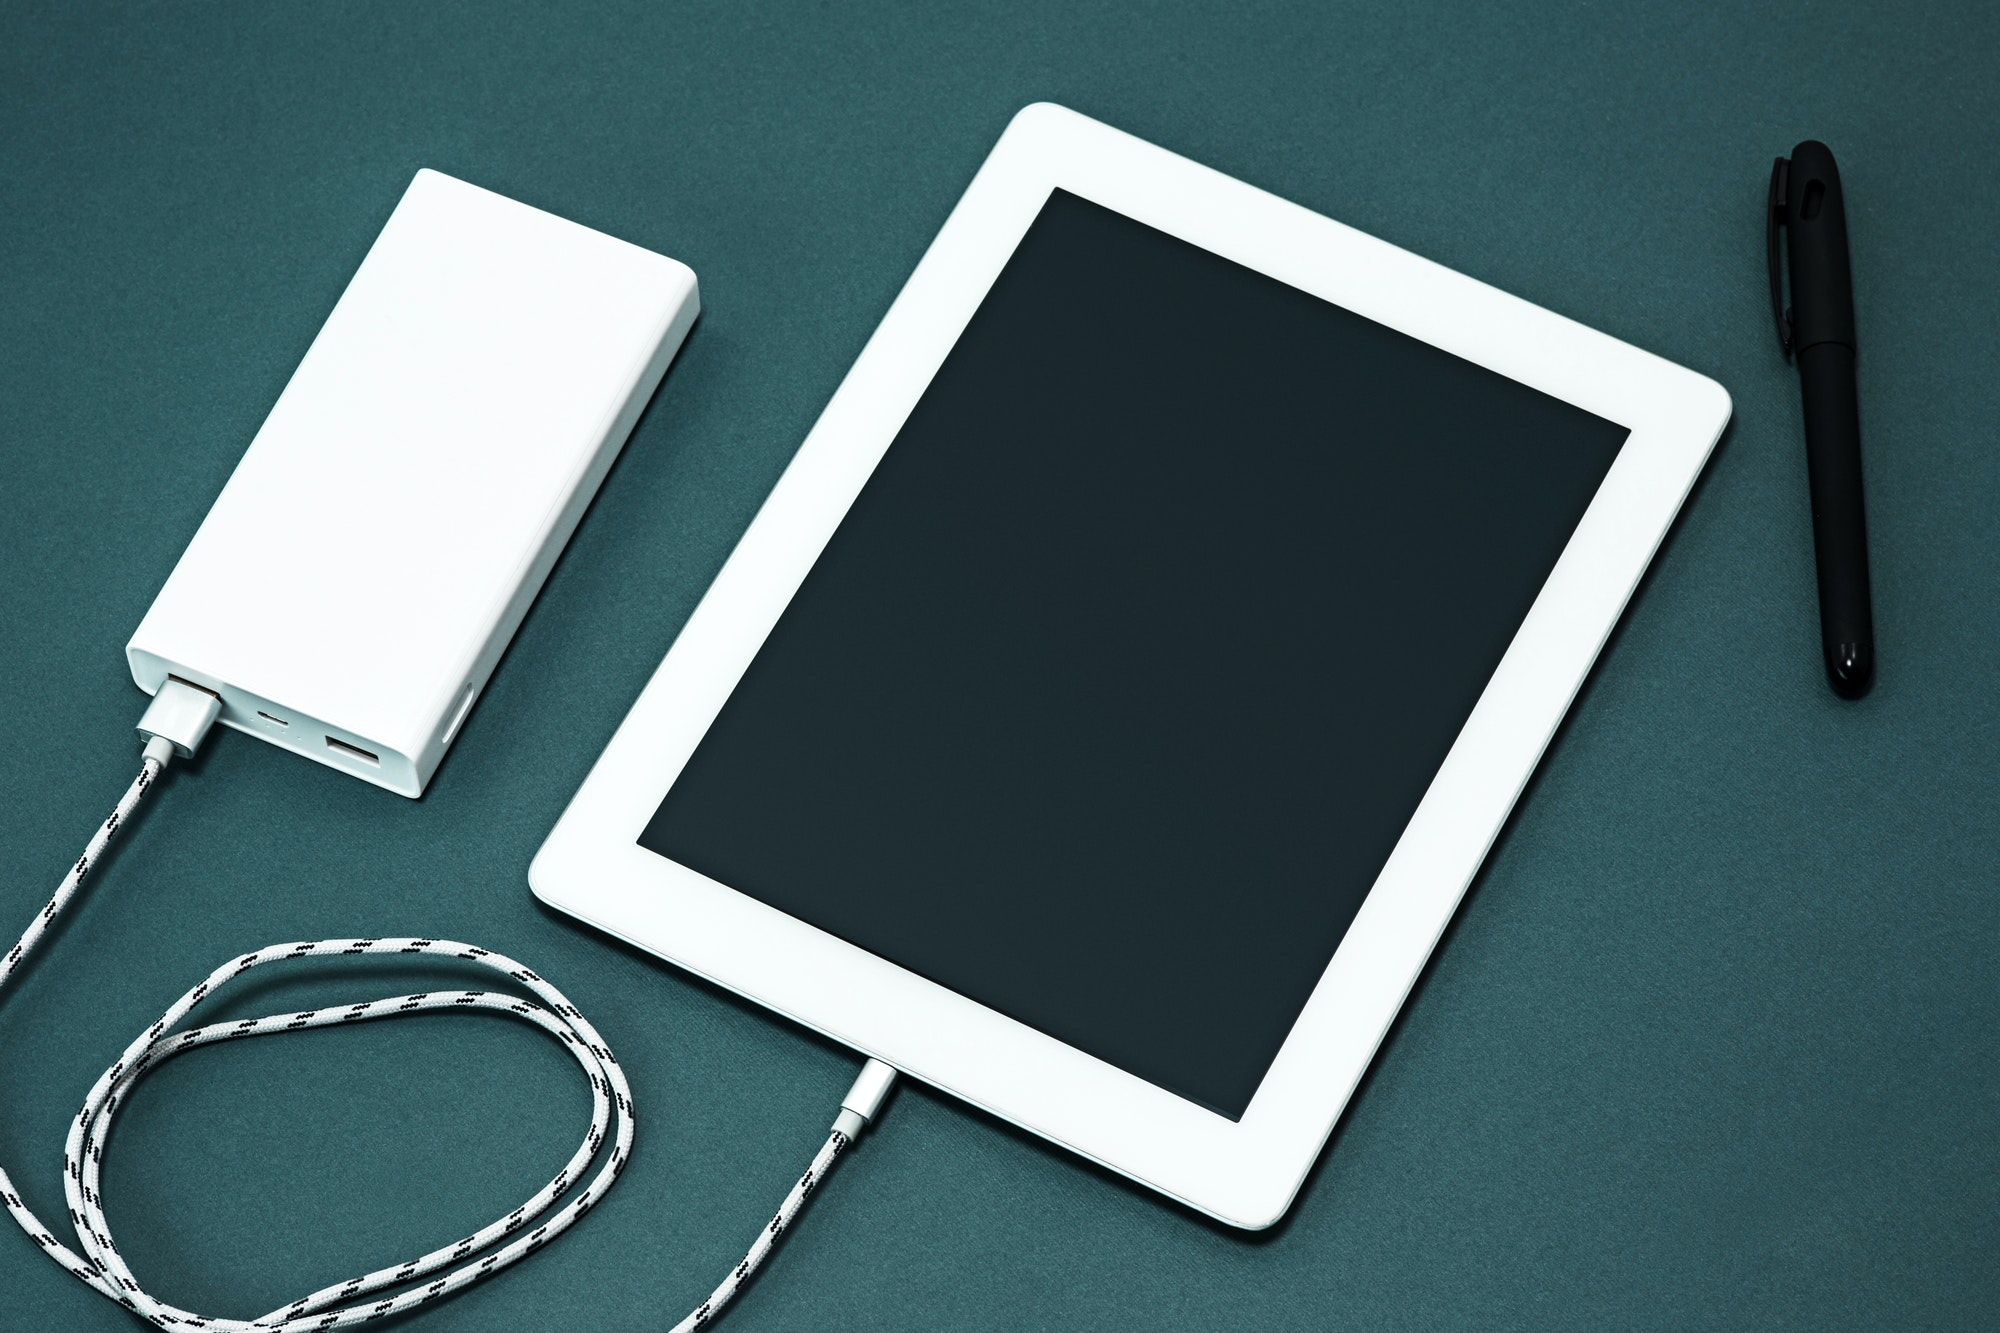 Power bank and laptop